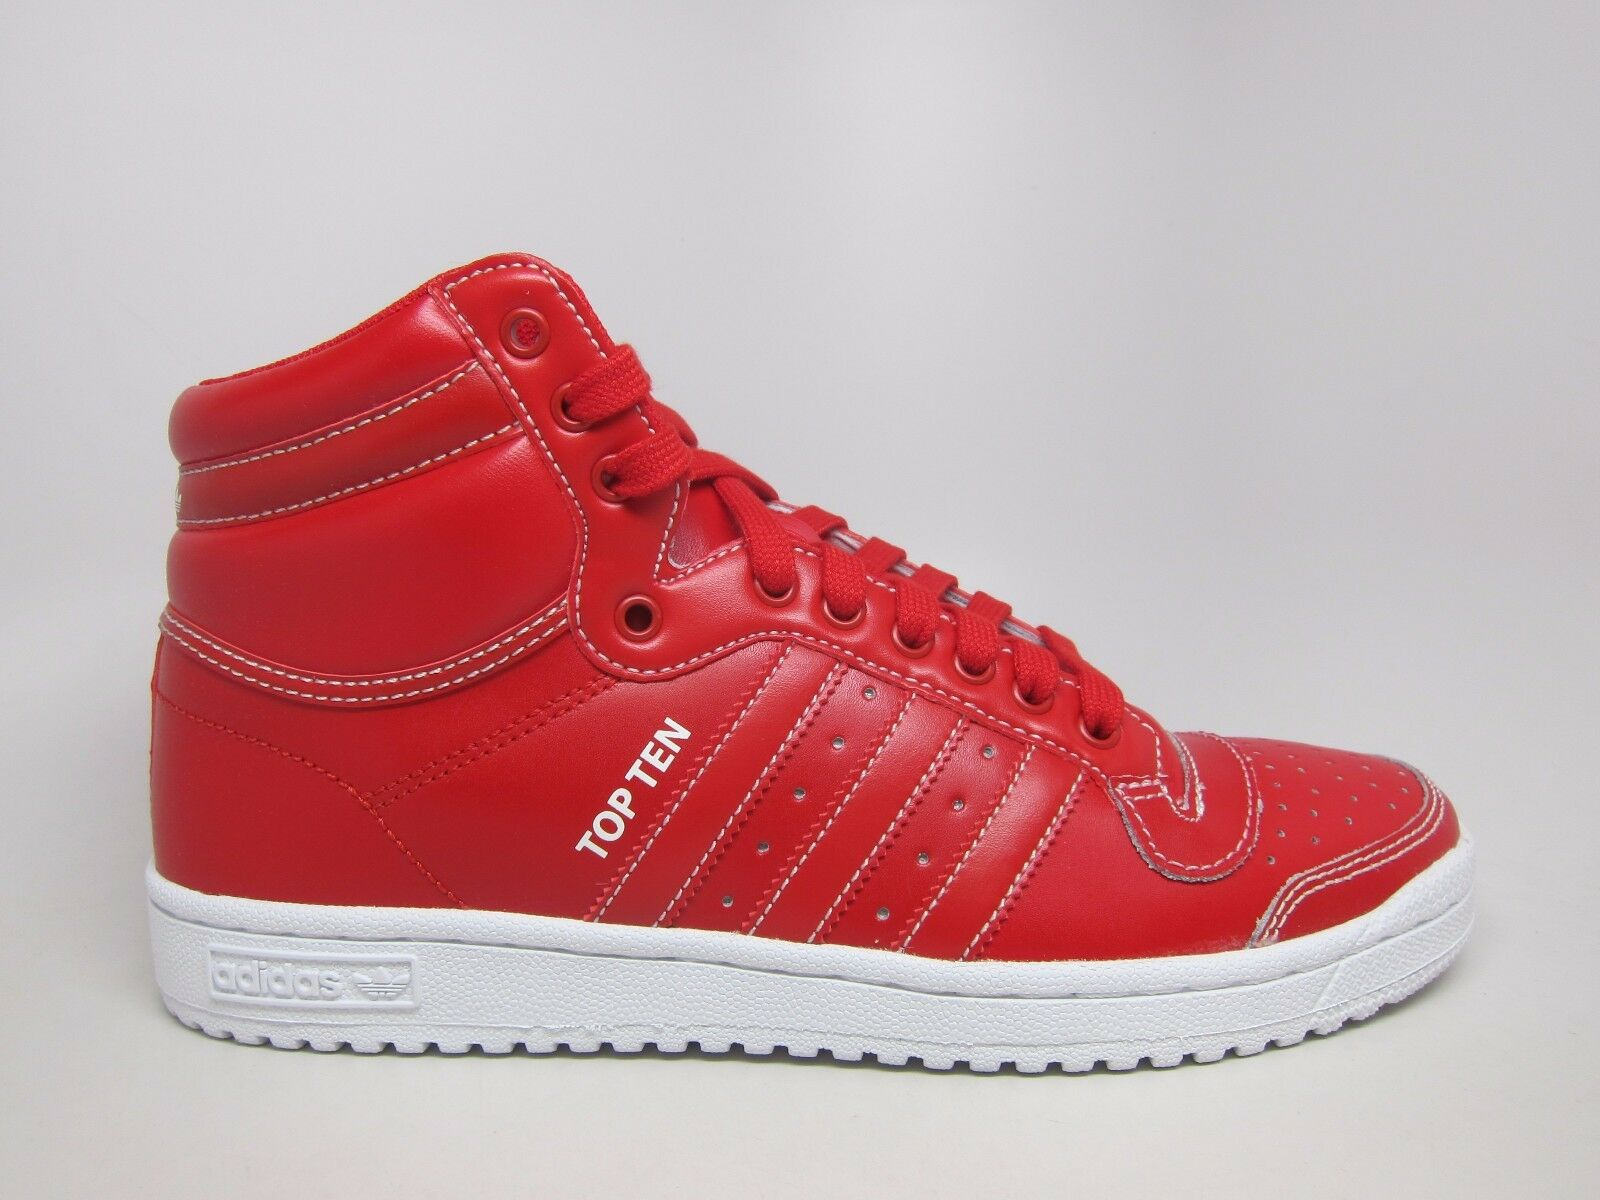 NEW MEN'S ADIDAS ORIGINALS TOP TEN HIGH SHOES  Price reduction  SCARLET//SCARLET-WHITE New shoes for men and women, limited time discount